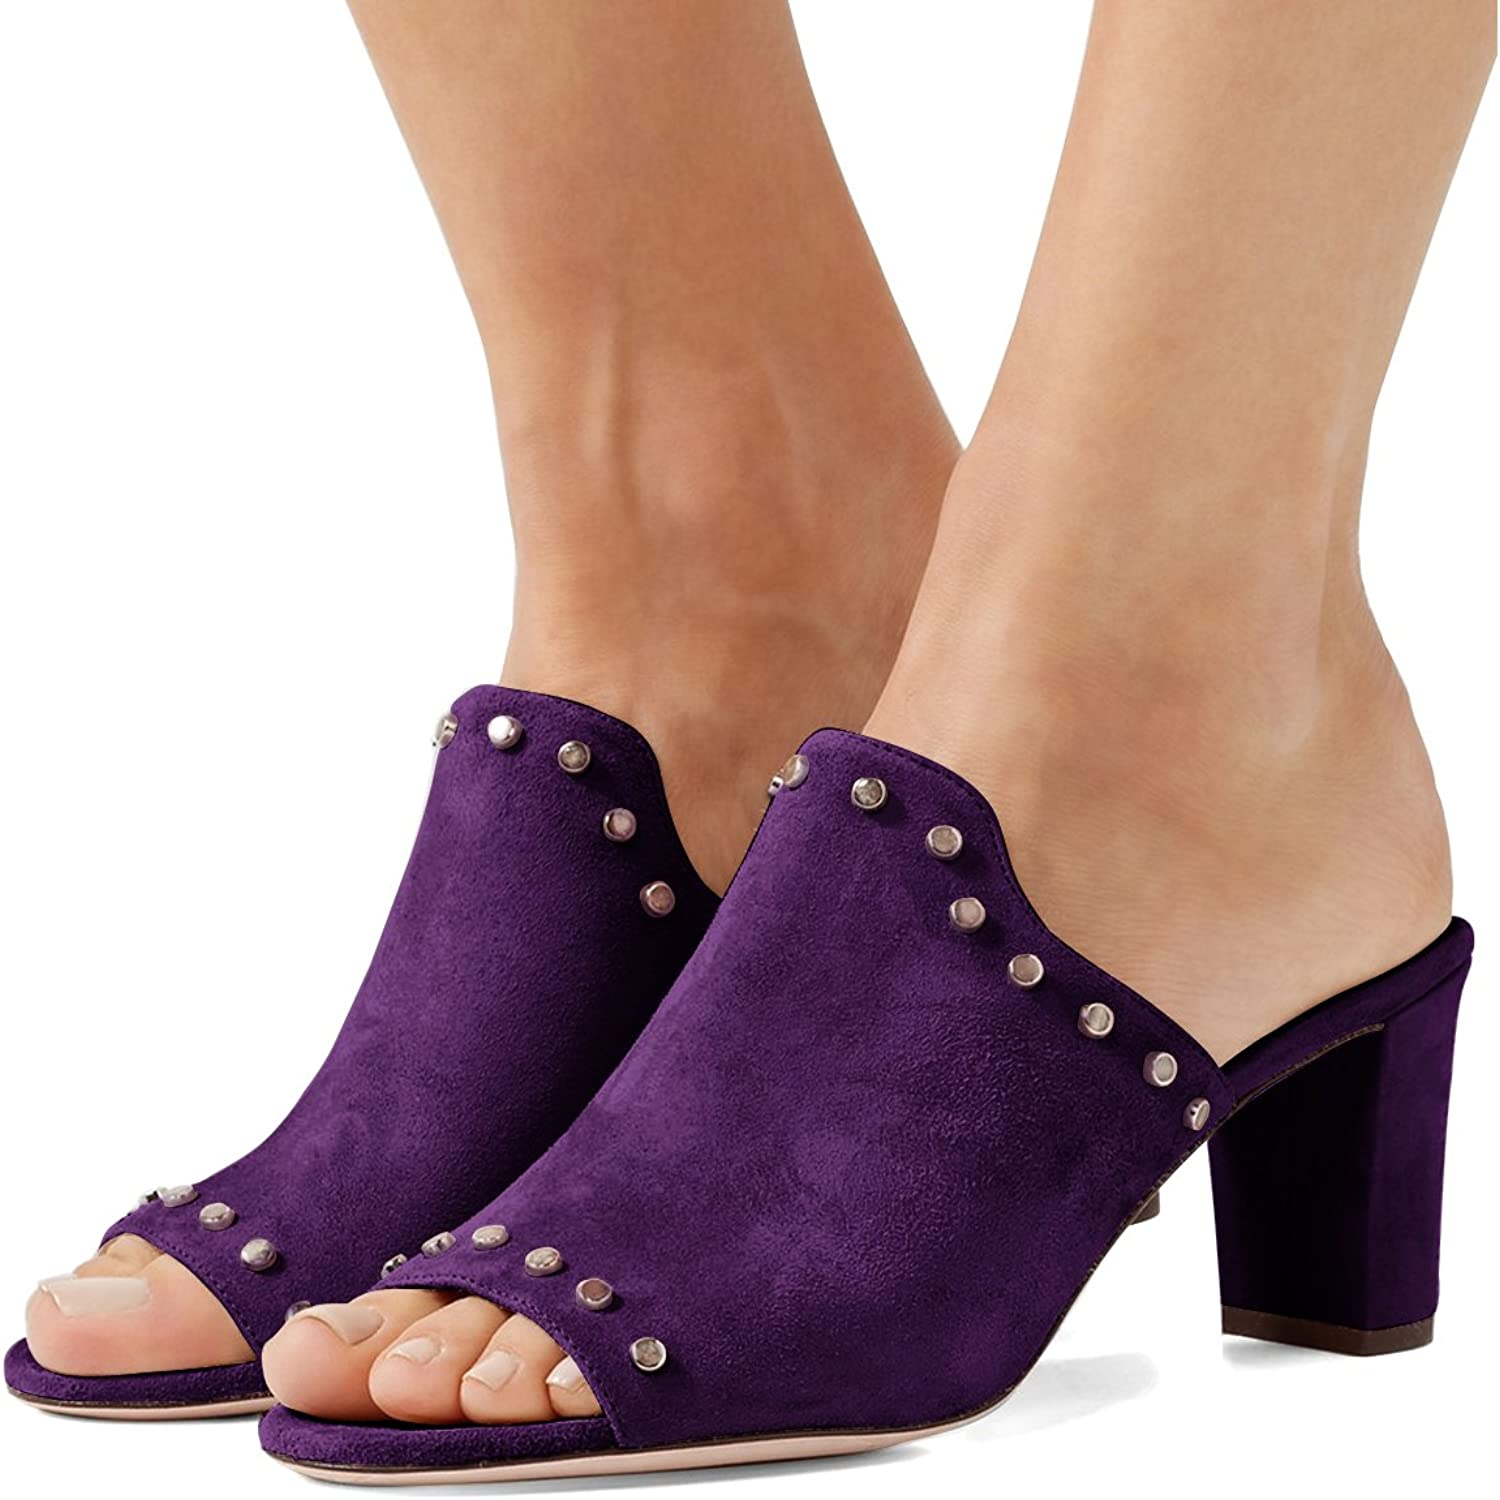 FSJ Women Peep Toe Mules Chunky Heeled Sandals with Studs Casual Slip On Summer shoes Size 4-15 US